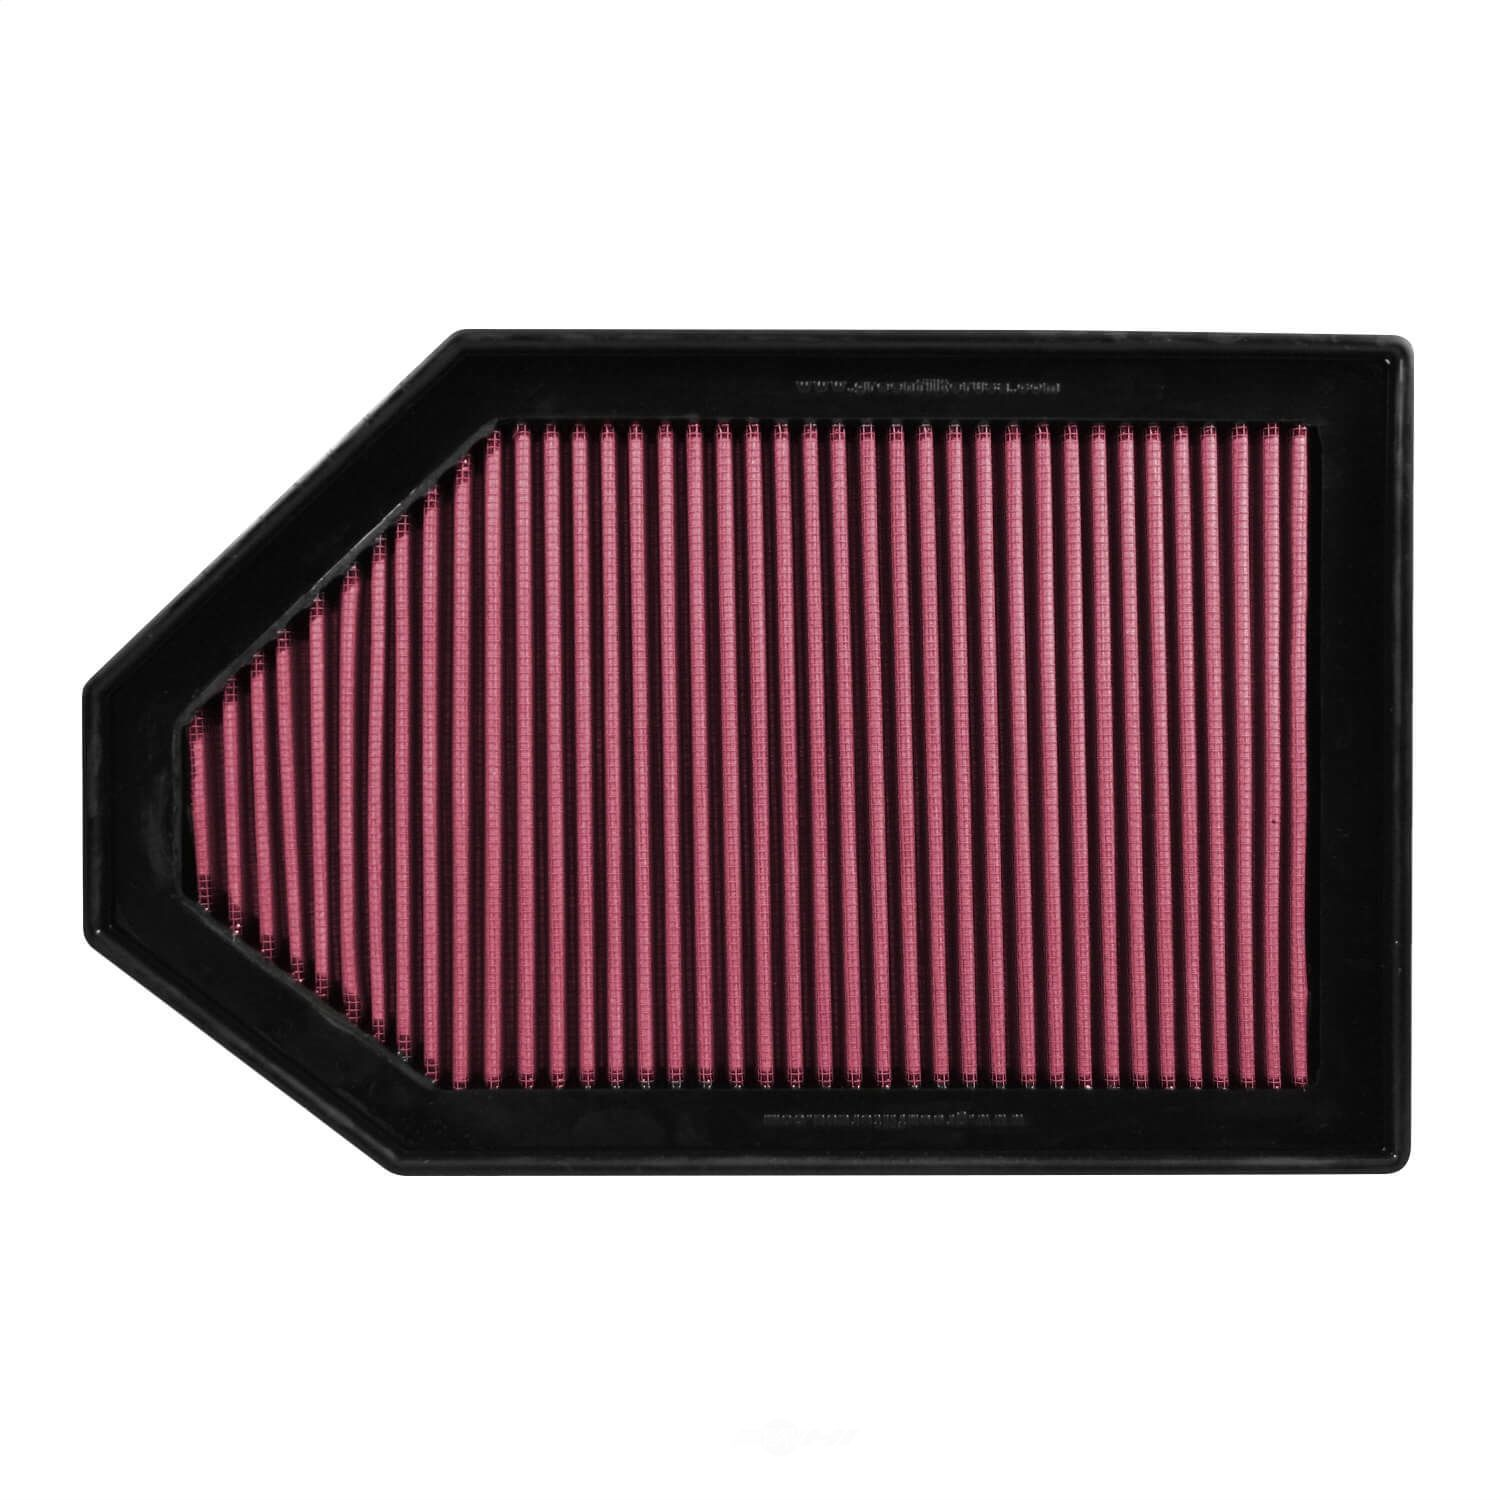 FLOWMASTER - Delta Forcecold Air Intake Filter - FLO 615028